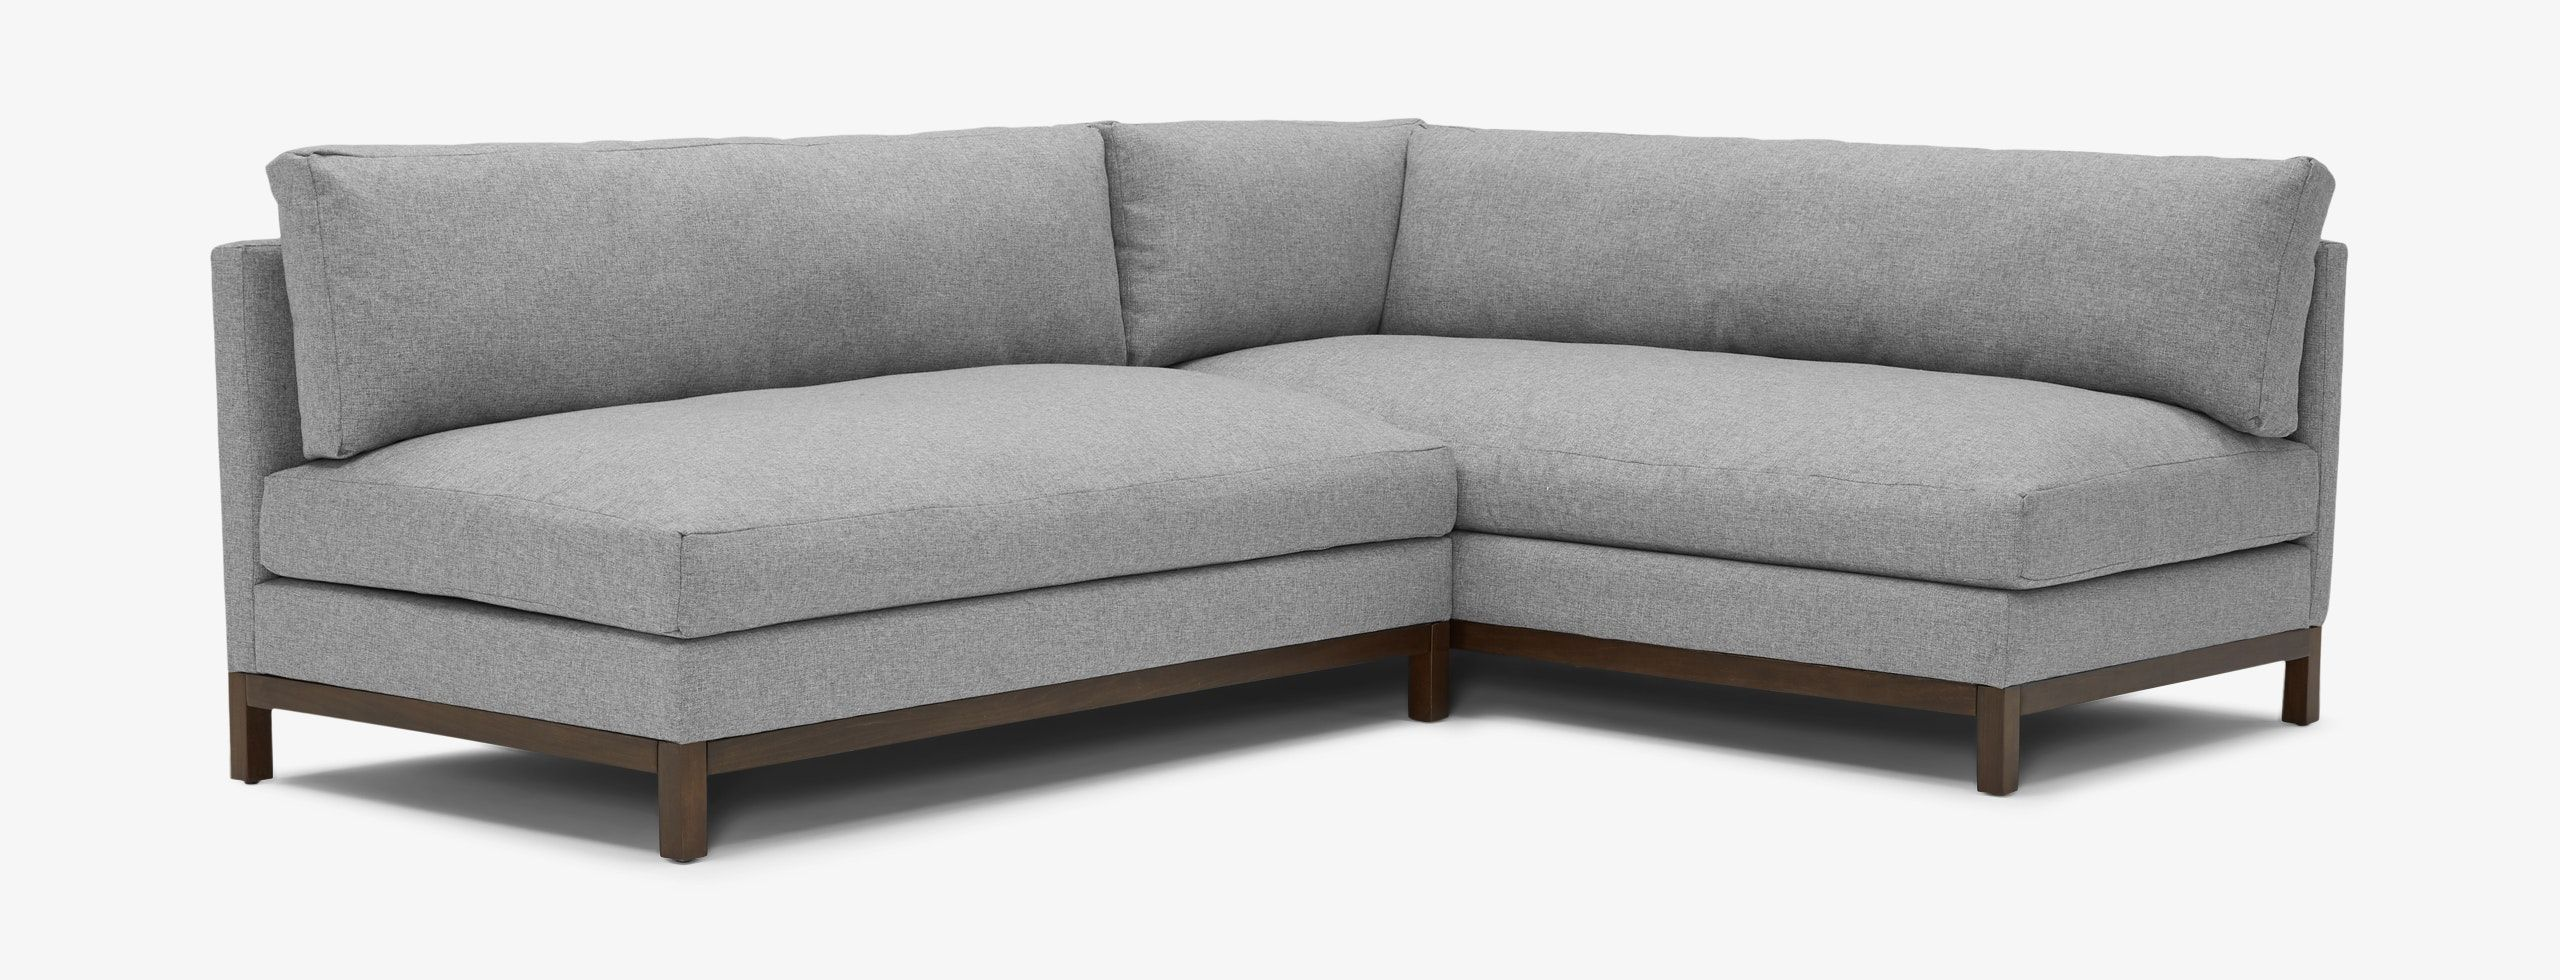 max home furniture sectional